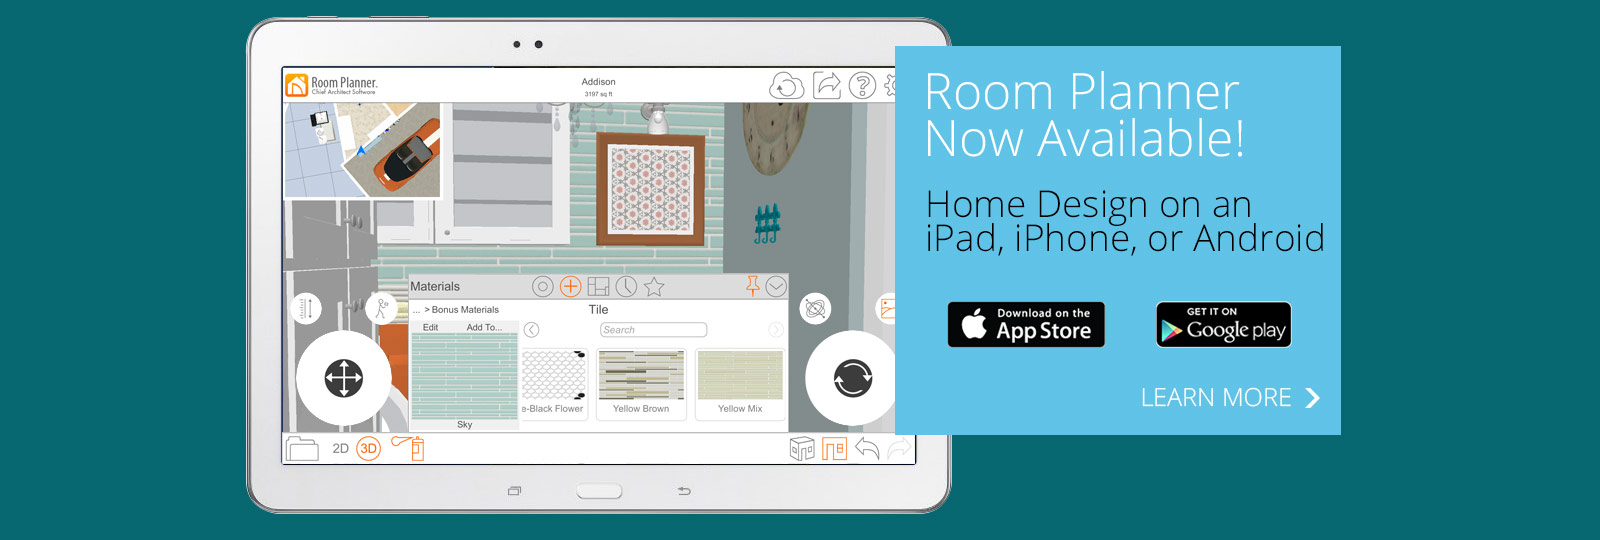 Room Planner Home Design Software App By Chief Architect: architecture designing app